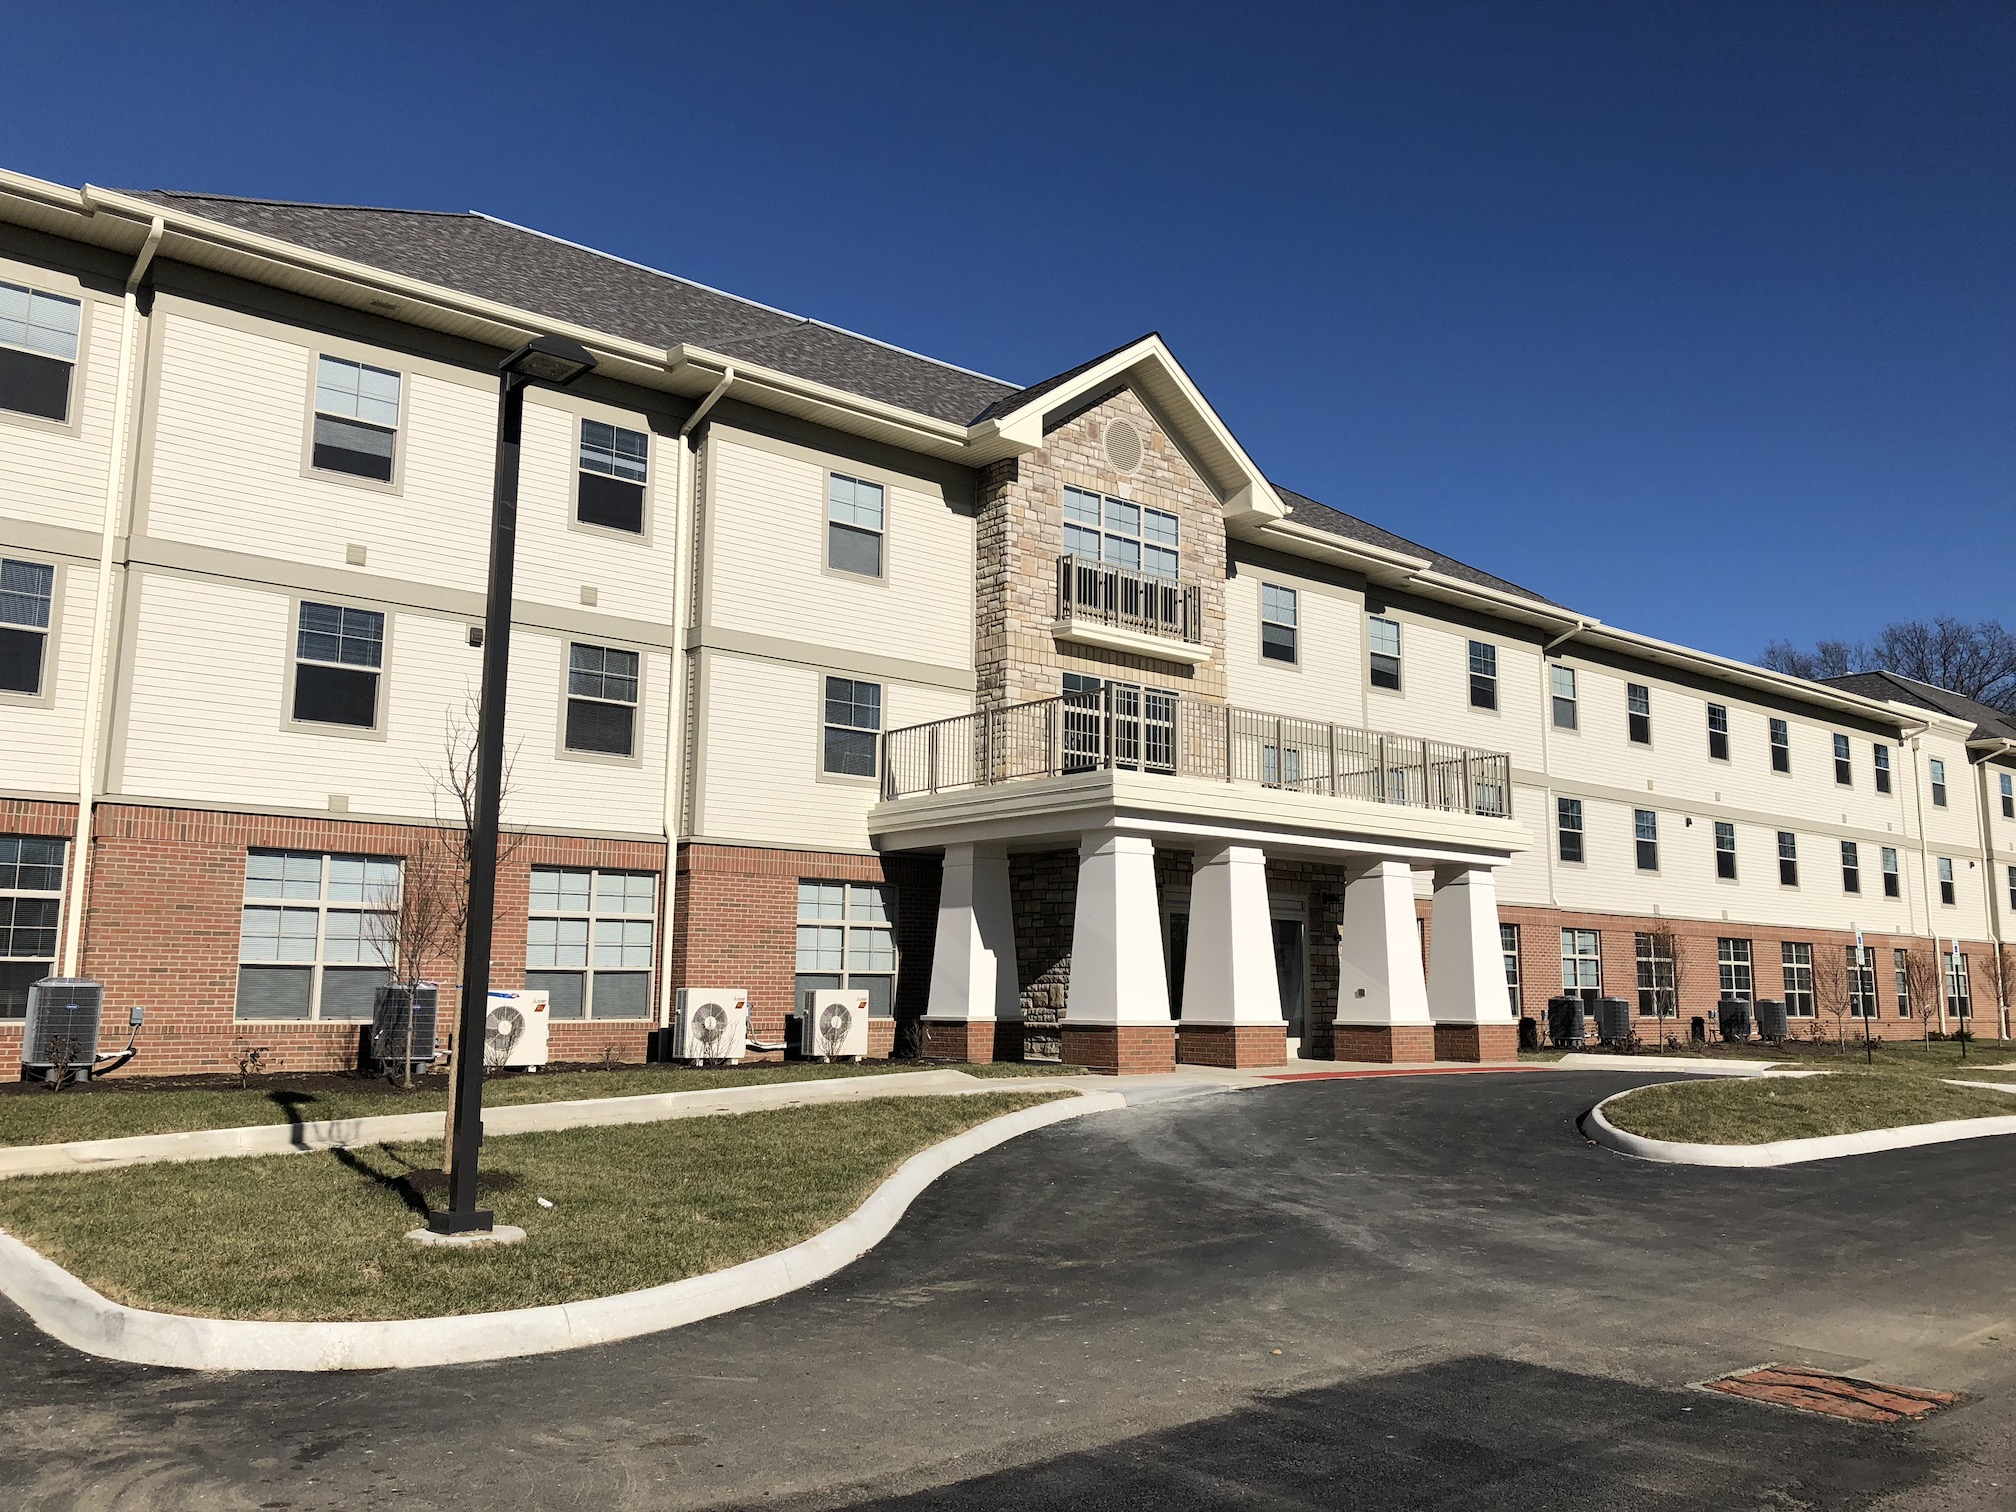 Hamilton Crossing, 64 affordable apartments for seniors in Whitehall, is the latest Homeport project financed thanks to OCCH.